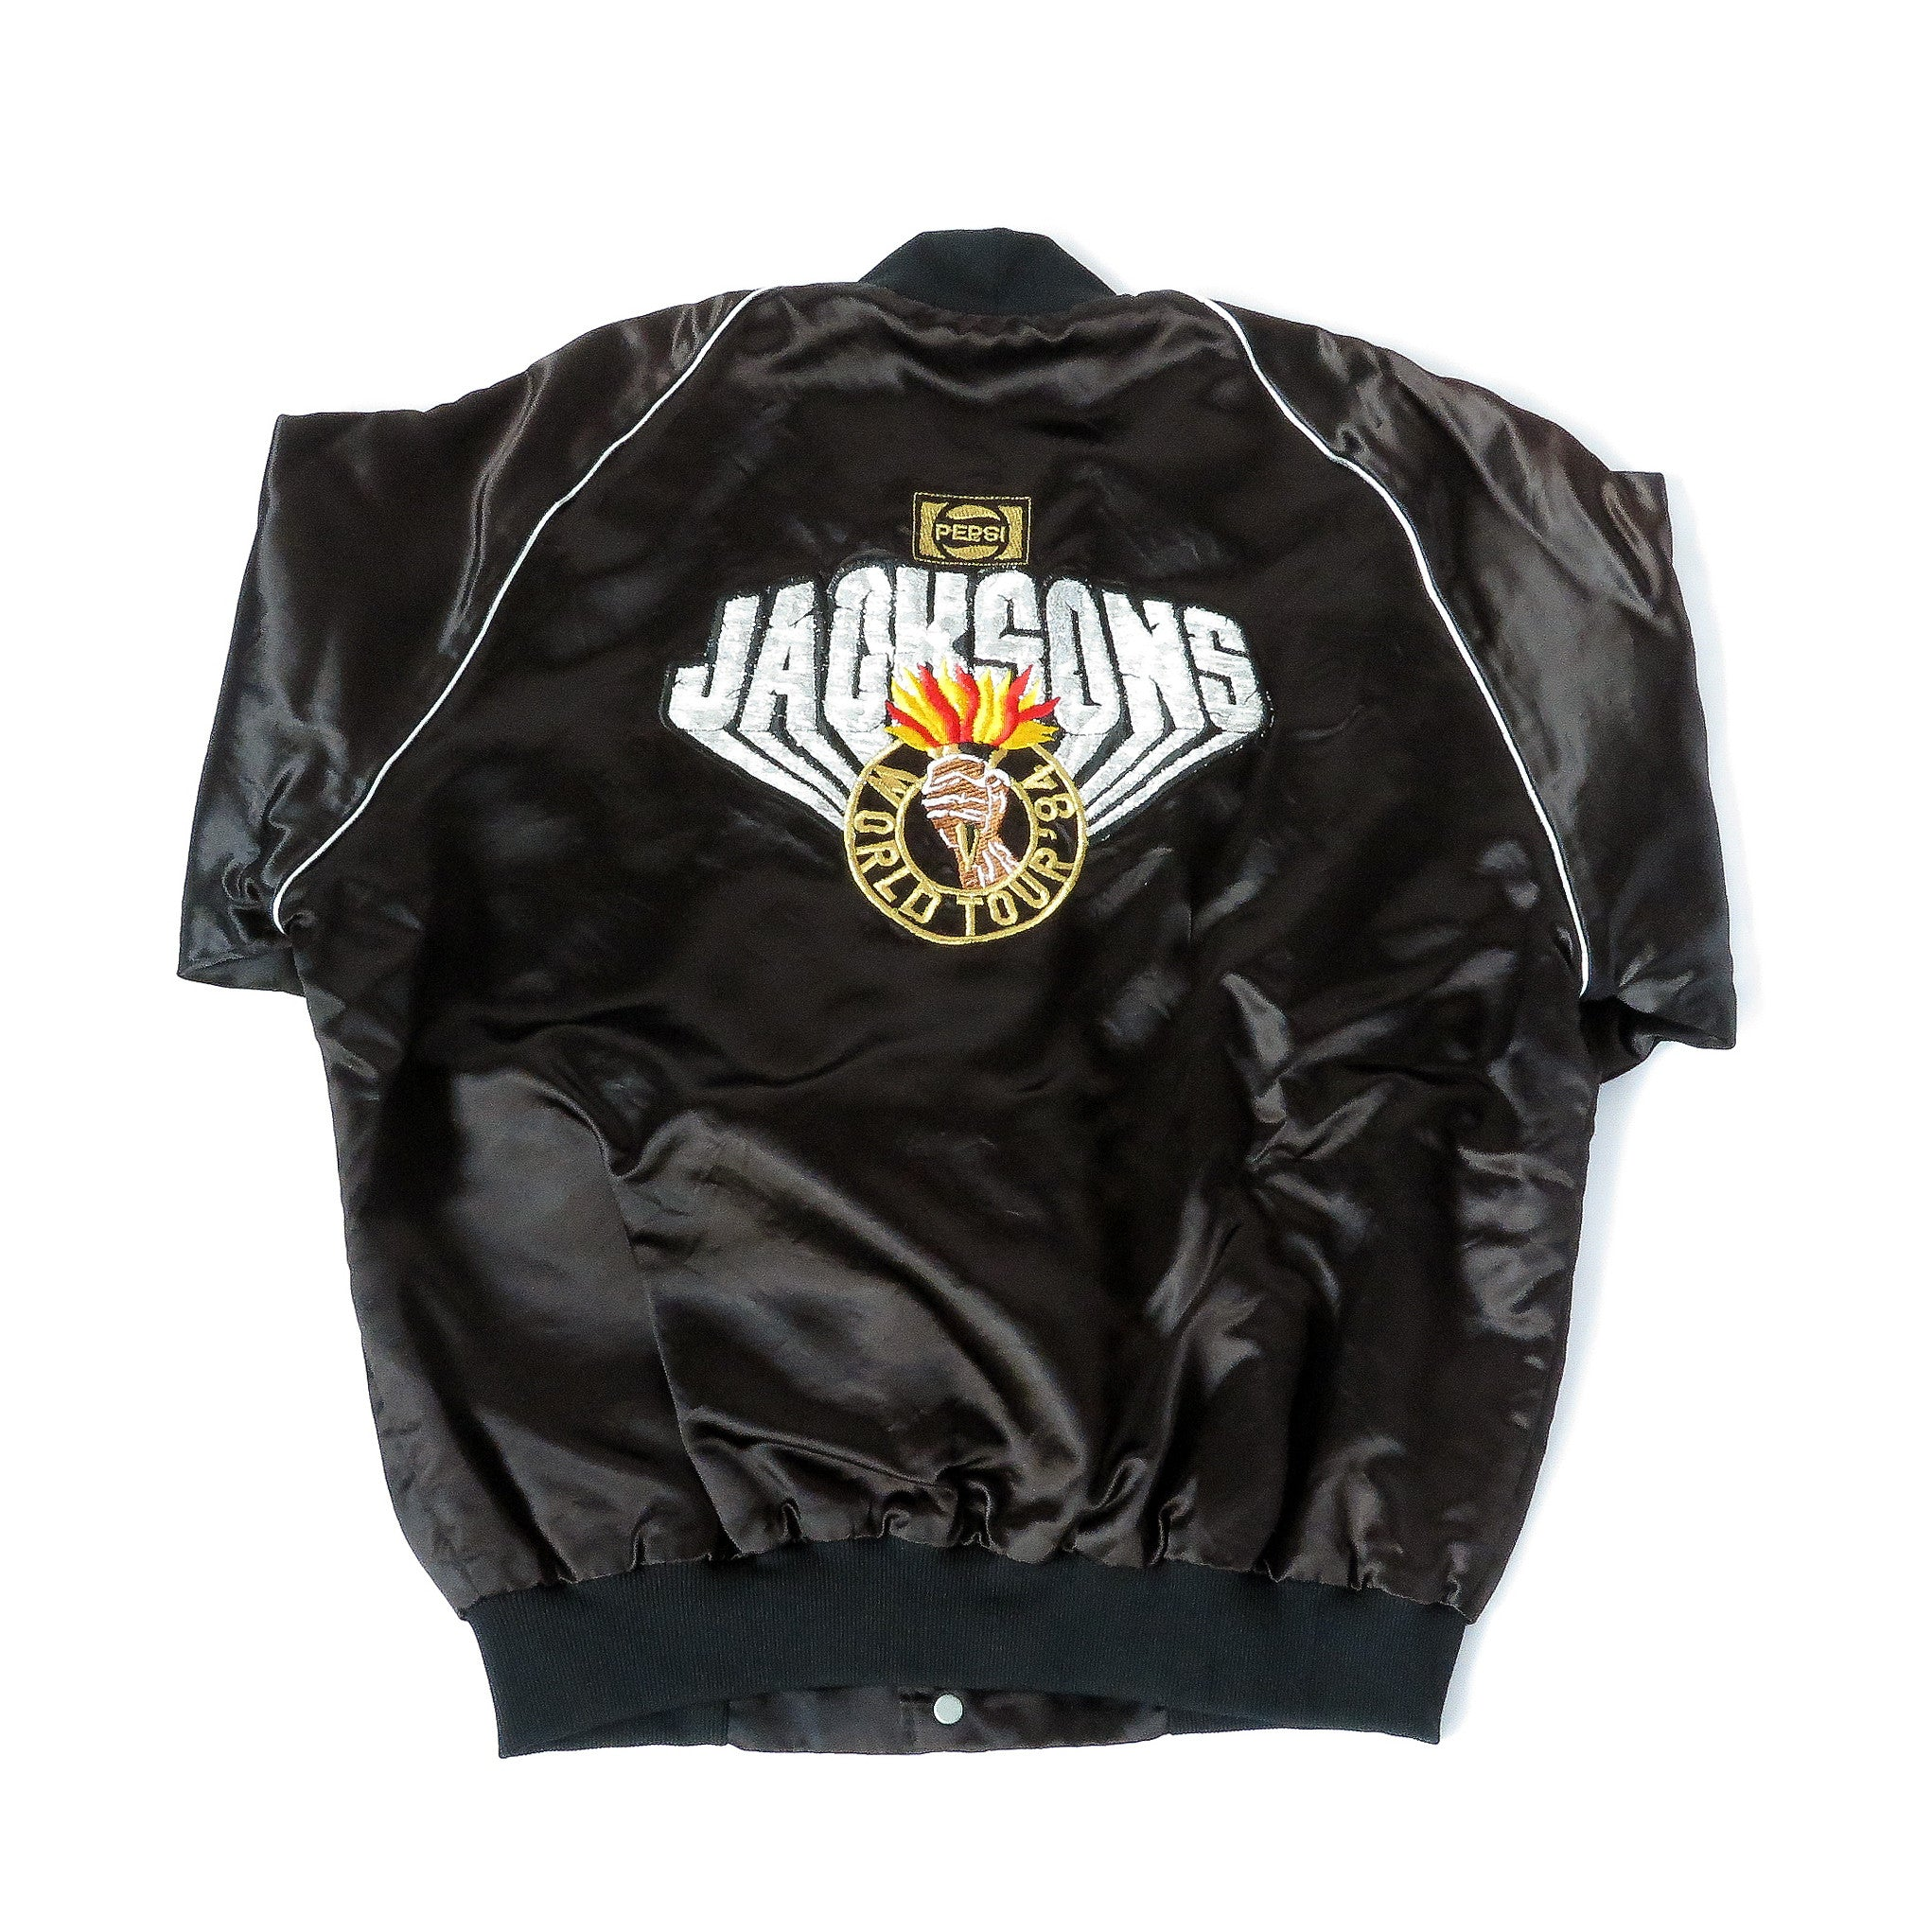 Vintage Jacksons 1984 World Tour Jacket Sz S